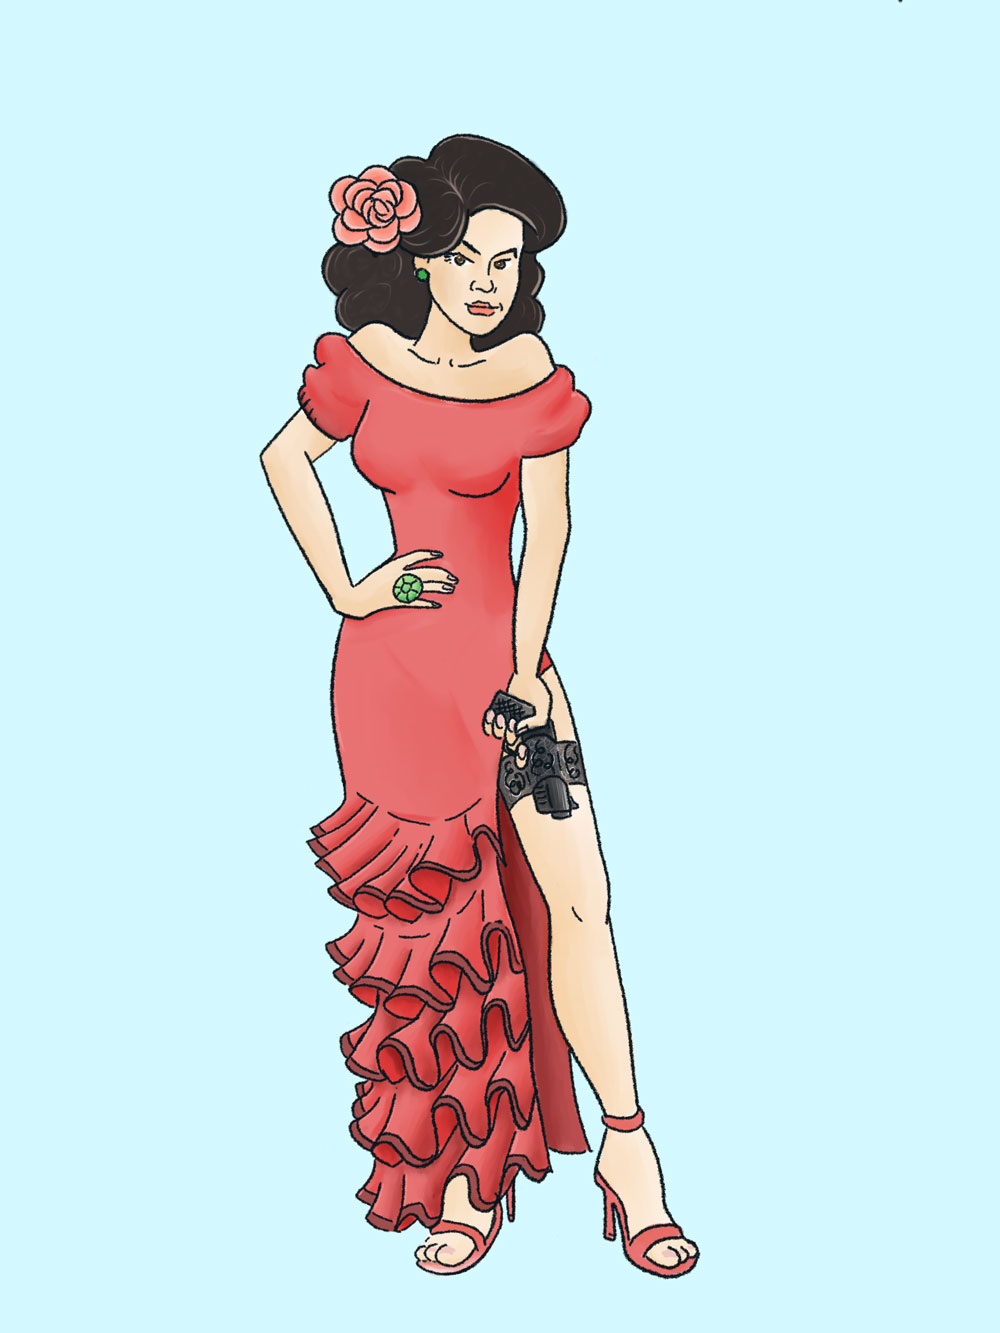 Tight Budget - A curvy Hispanic femme fatale—a perfect love interest for our hero, Addy Bond. With a high slit in her slinky red dress, she reveals a gun tucked in her garter. Can you trust her?